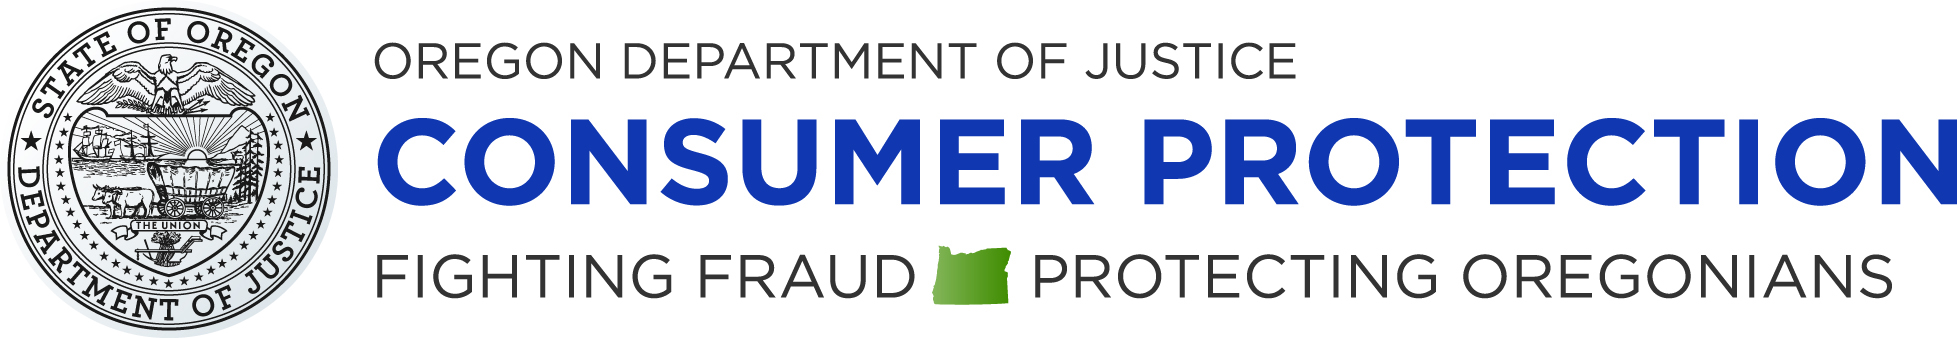 2019.3.21 OR DOJ Consumer Protection